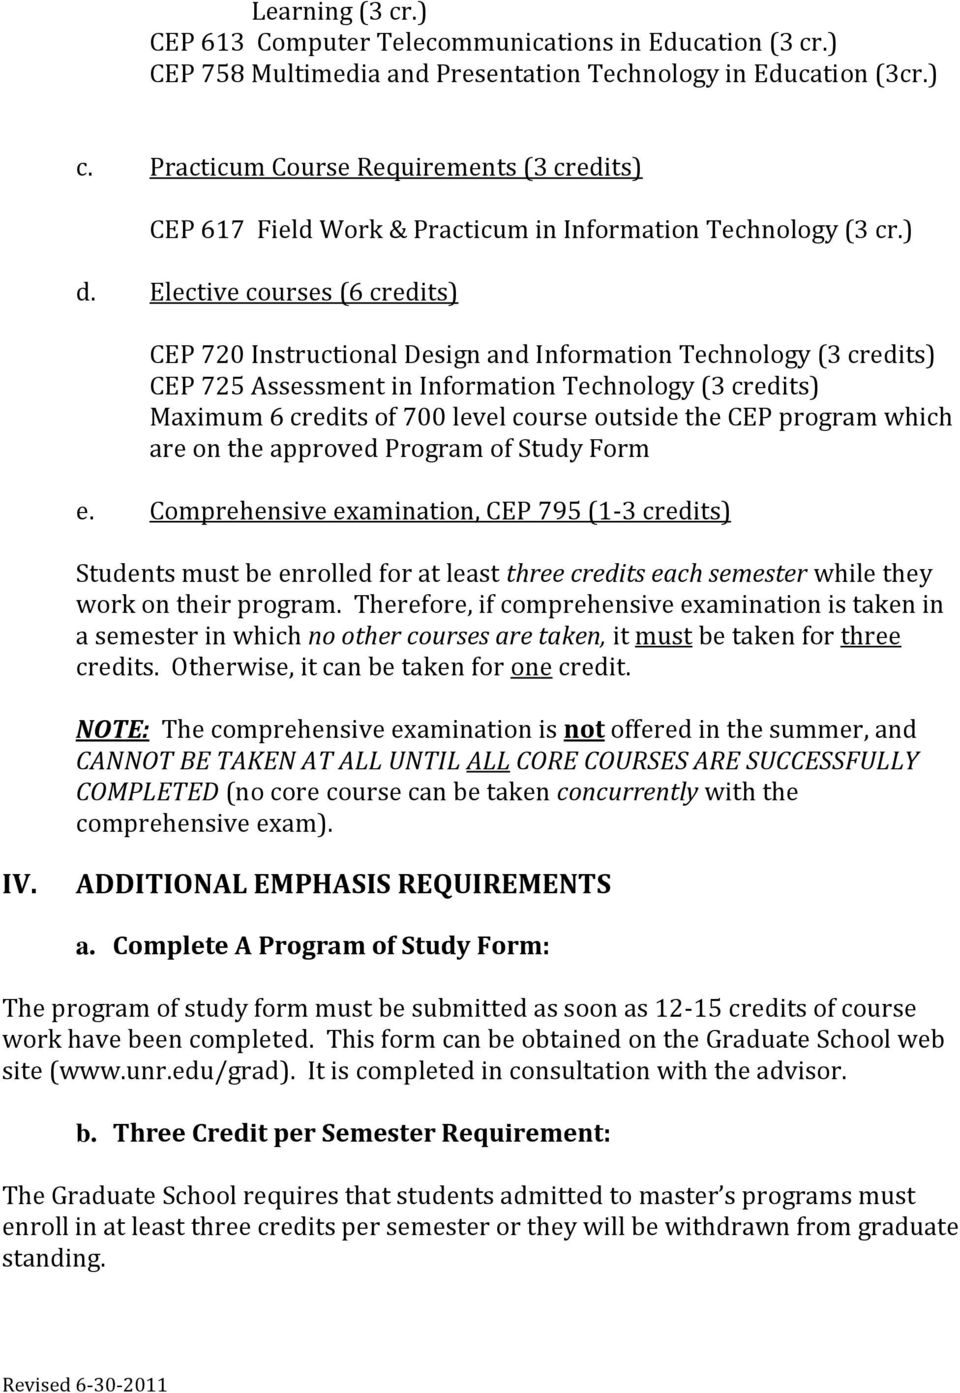 Elective courses (6 credits) CEP 720 Instructional Design and Information Technology (3 credits) CEP 725 Assessment in Information Technology (3 credits) Maximum 6 credits of 700 level course outside